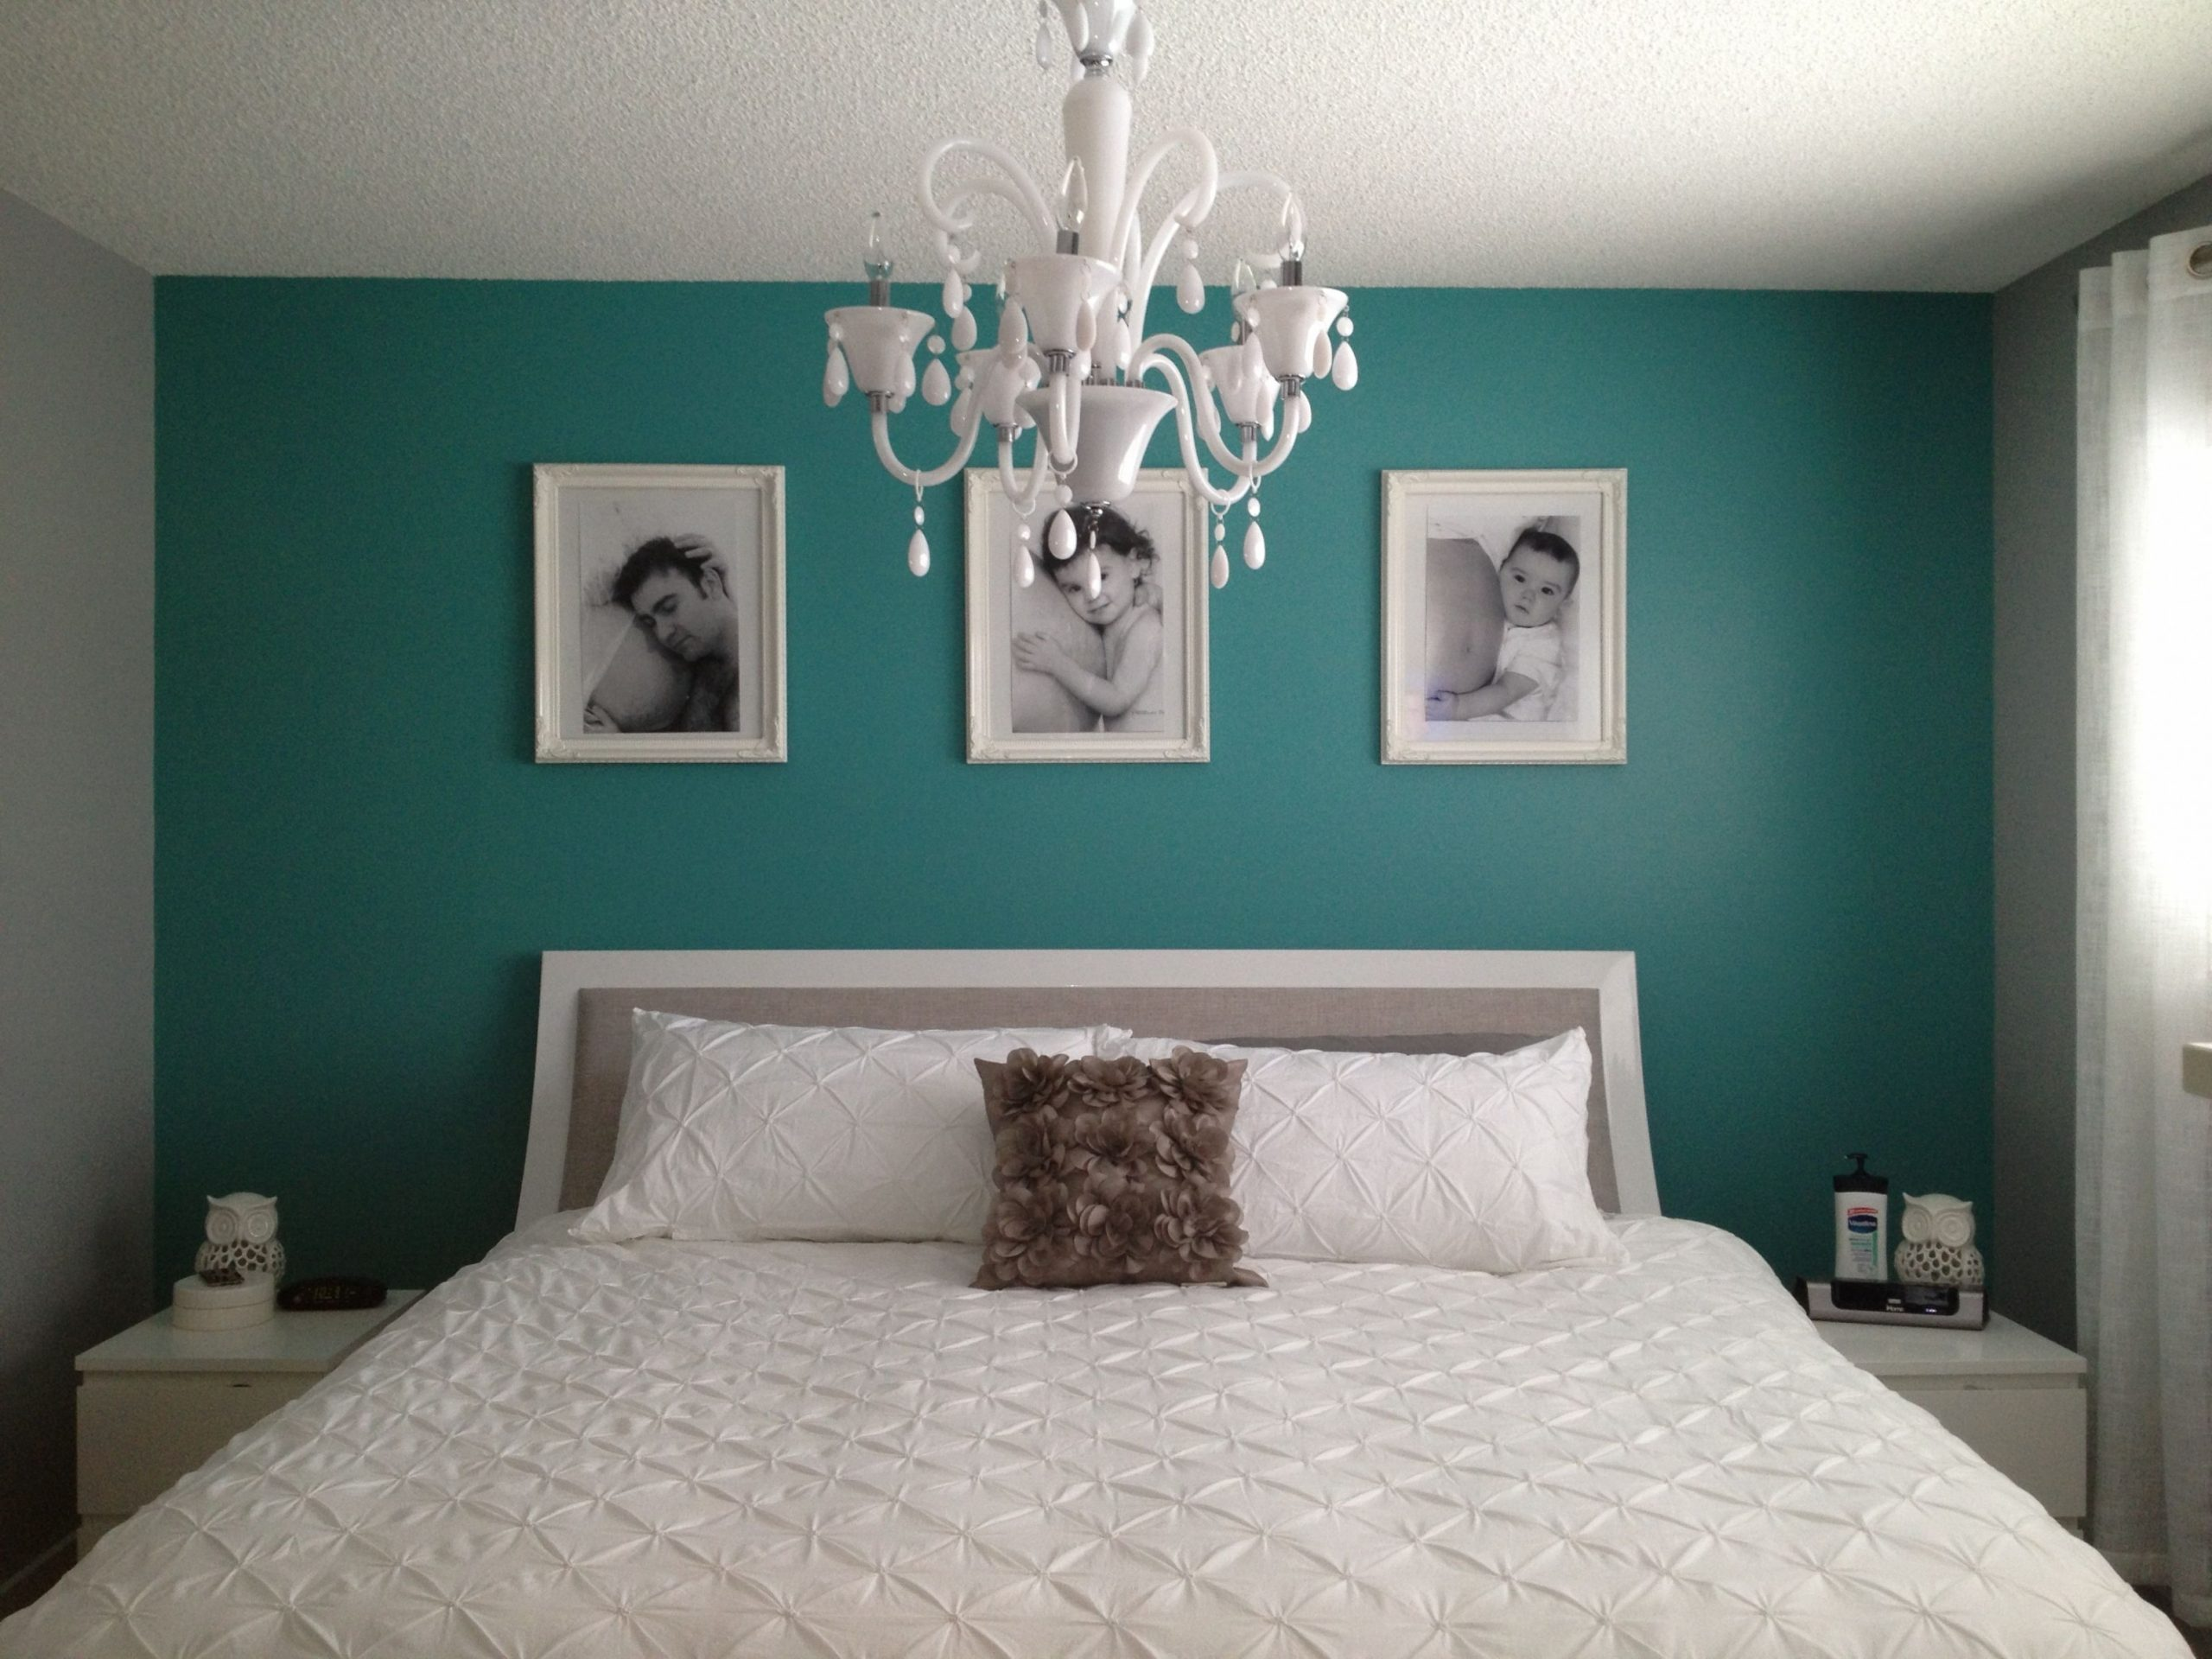 Cheap Decor Chambre - SalePrice:9$  Teal bedroom decor, Bedroom  - Bedroom Ideas Teal